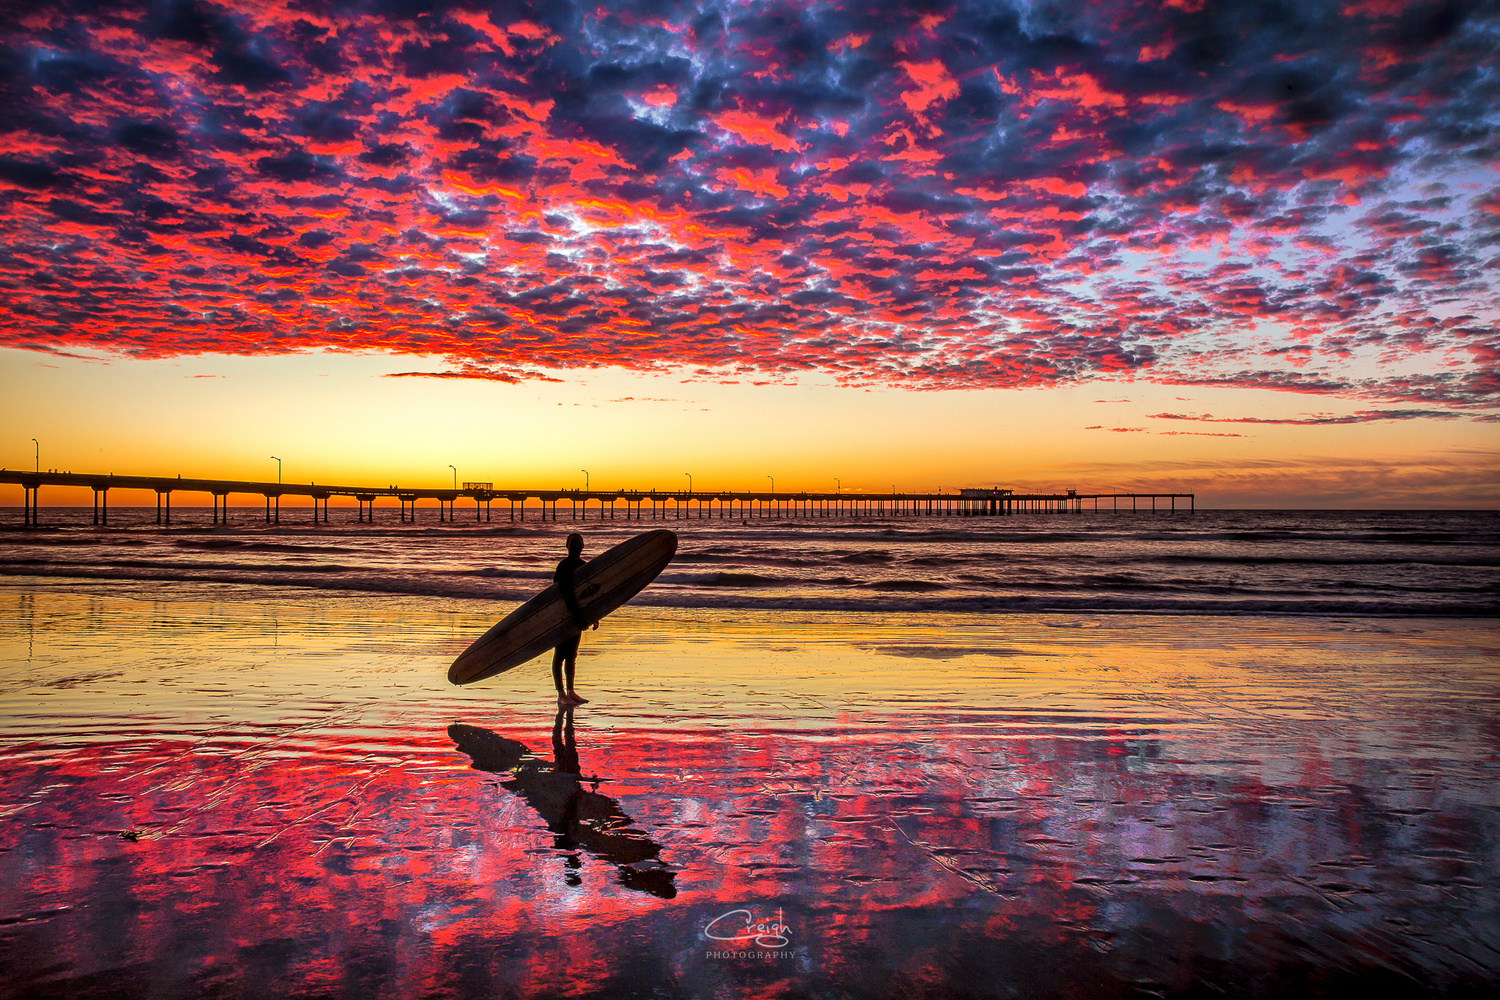 Sunset Surfer by Creigh McIntyre